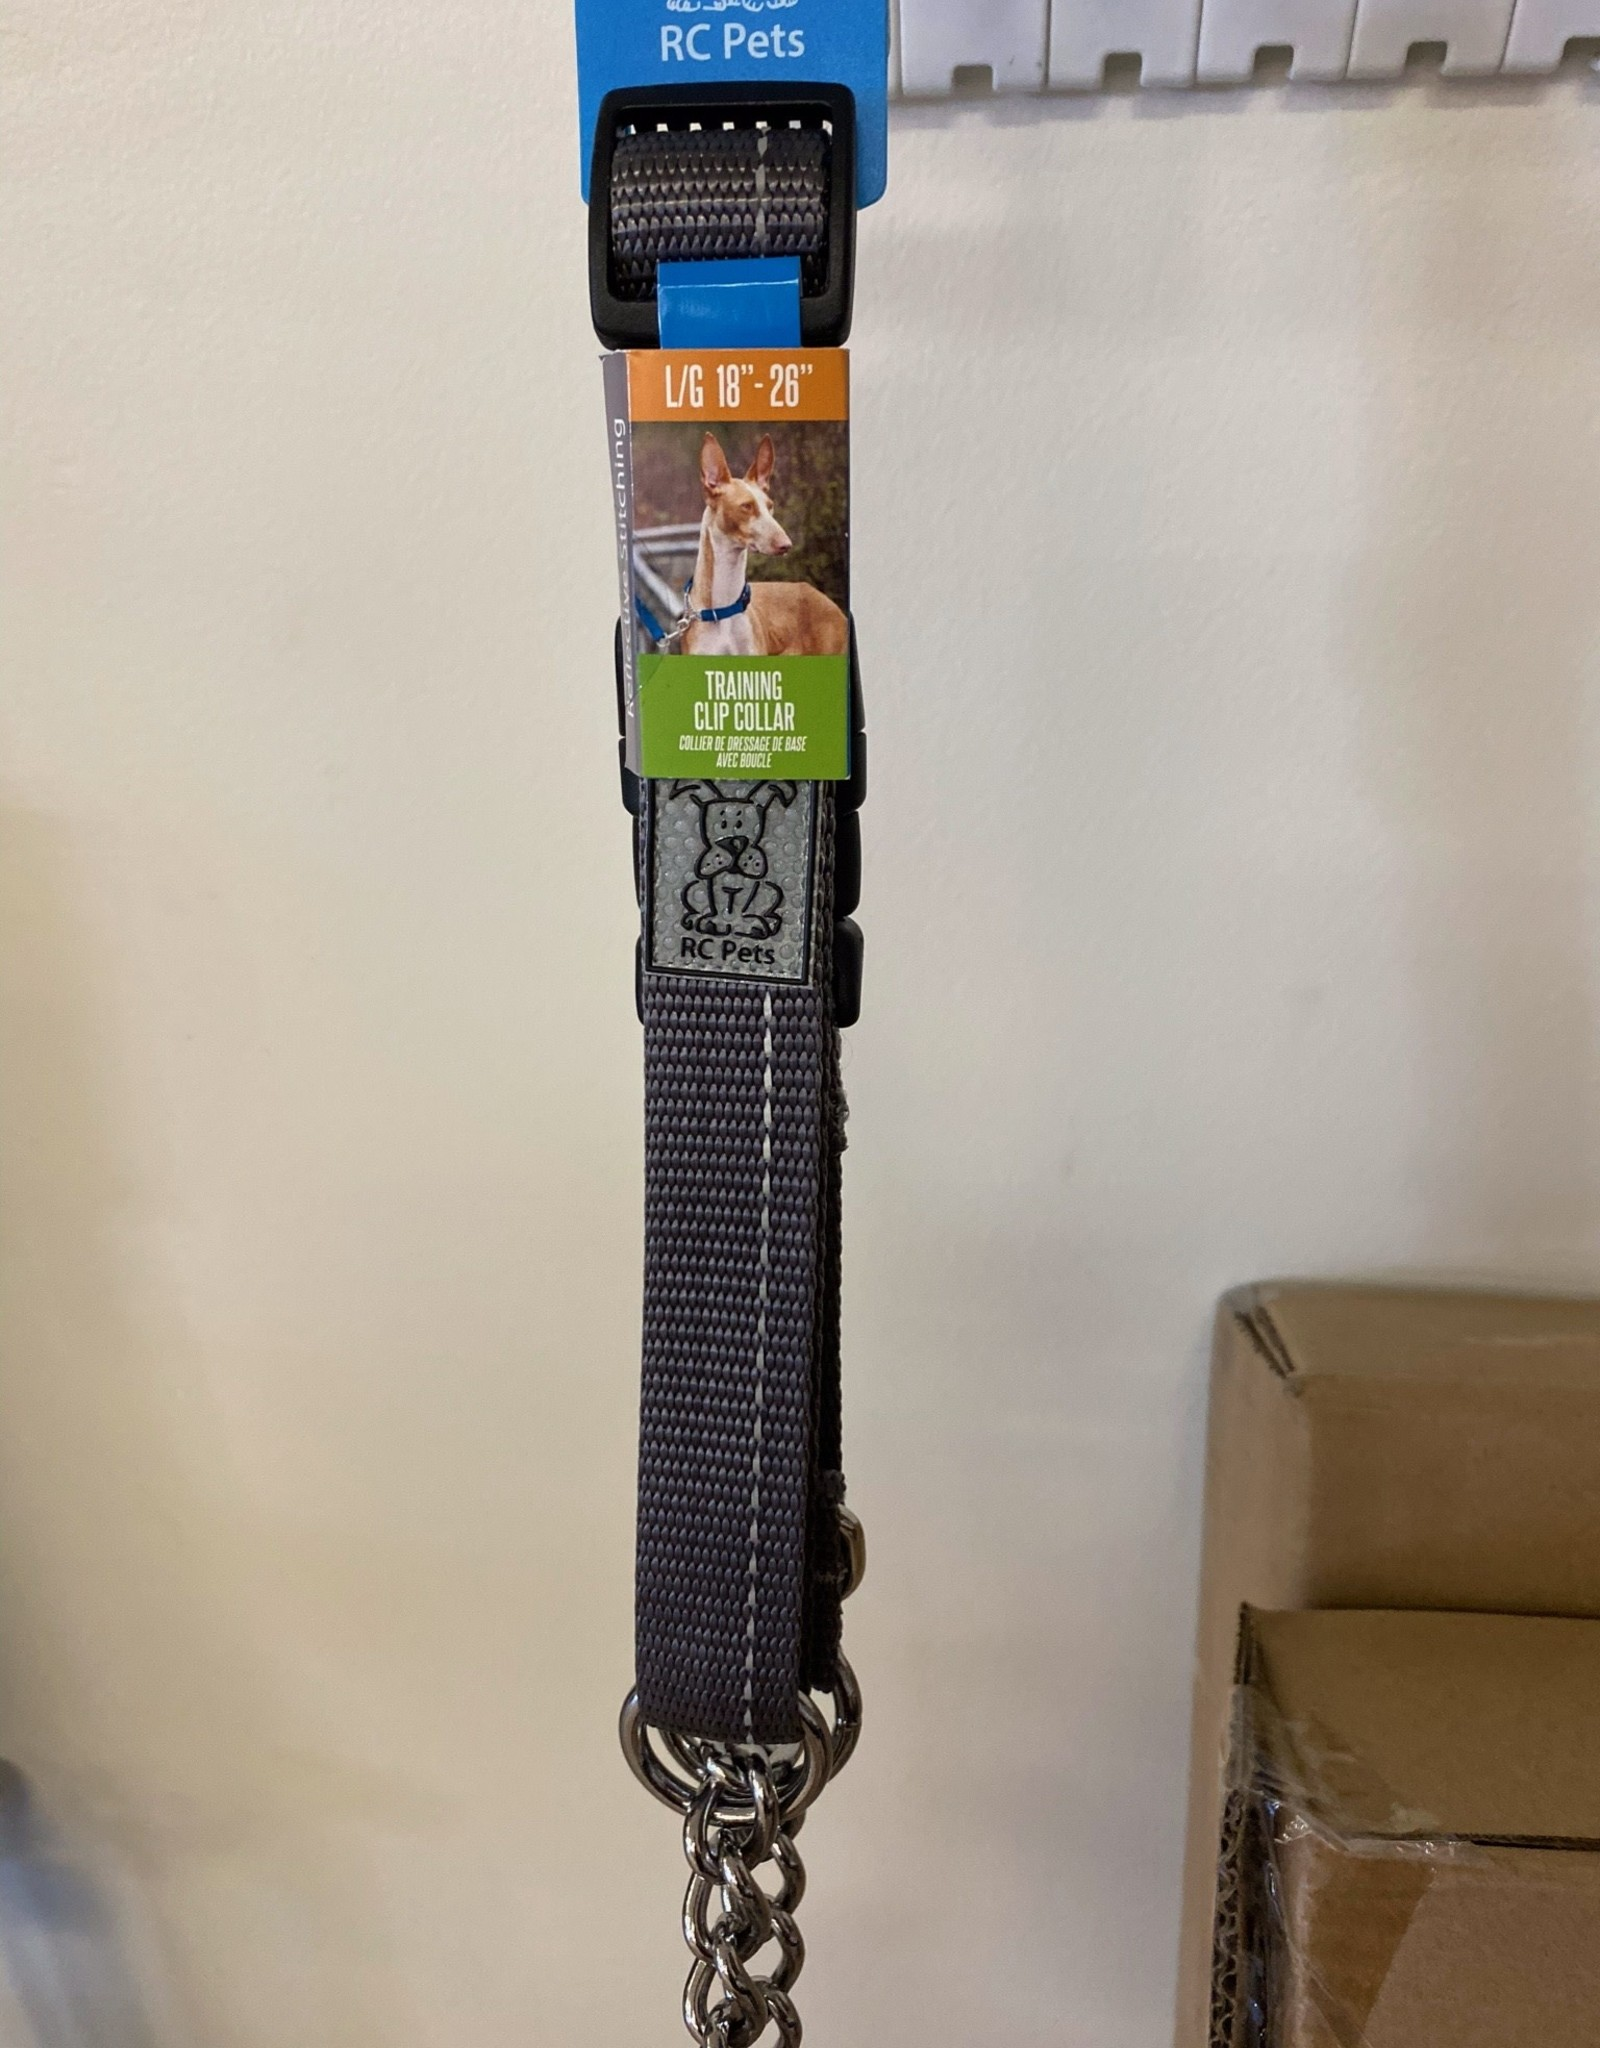 RC Pets Rc Pets Collars - Large Training Clip Charcoal